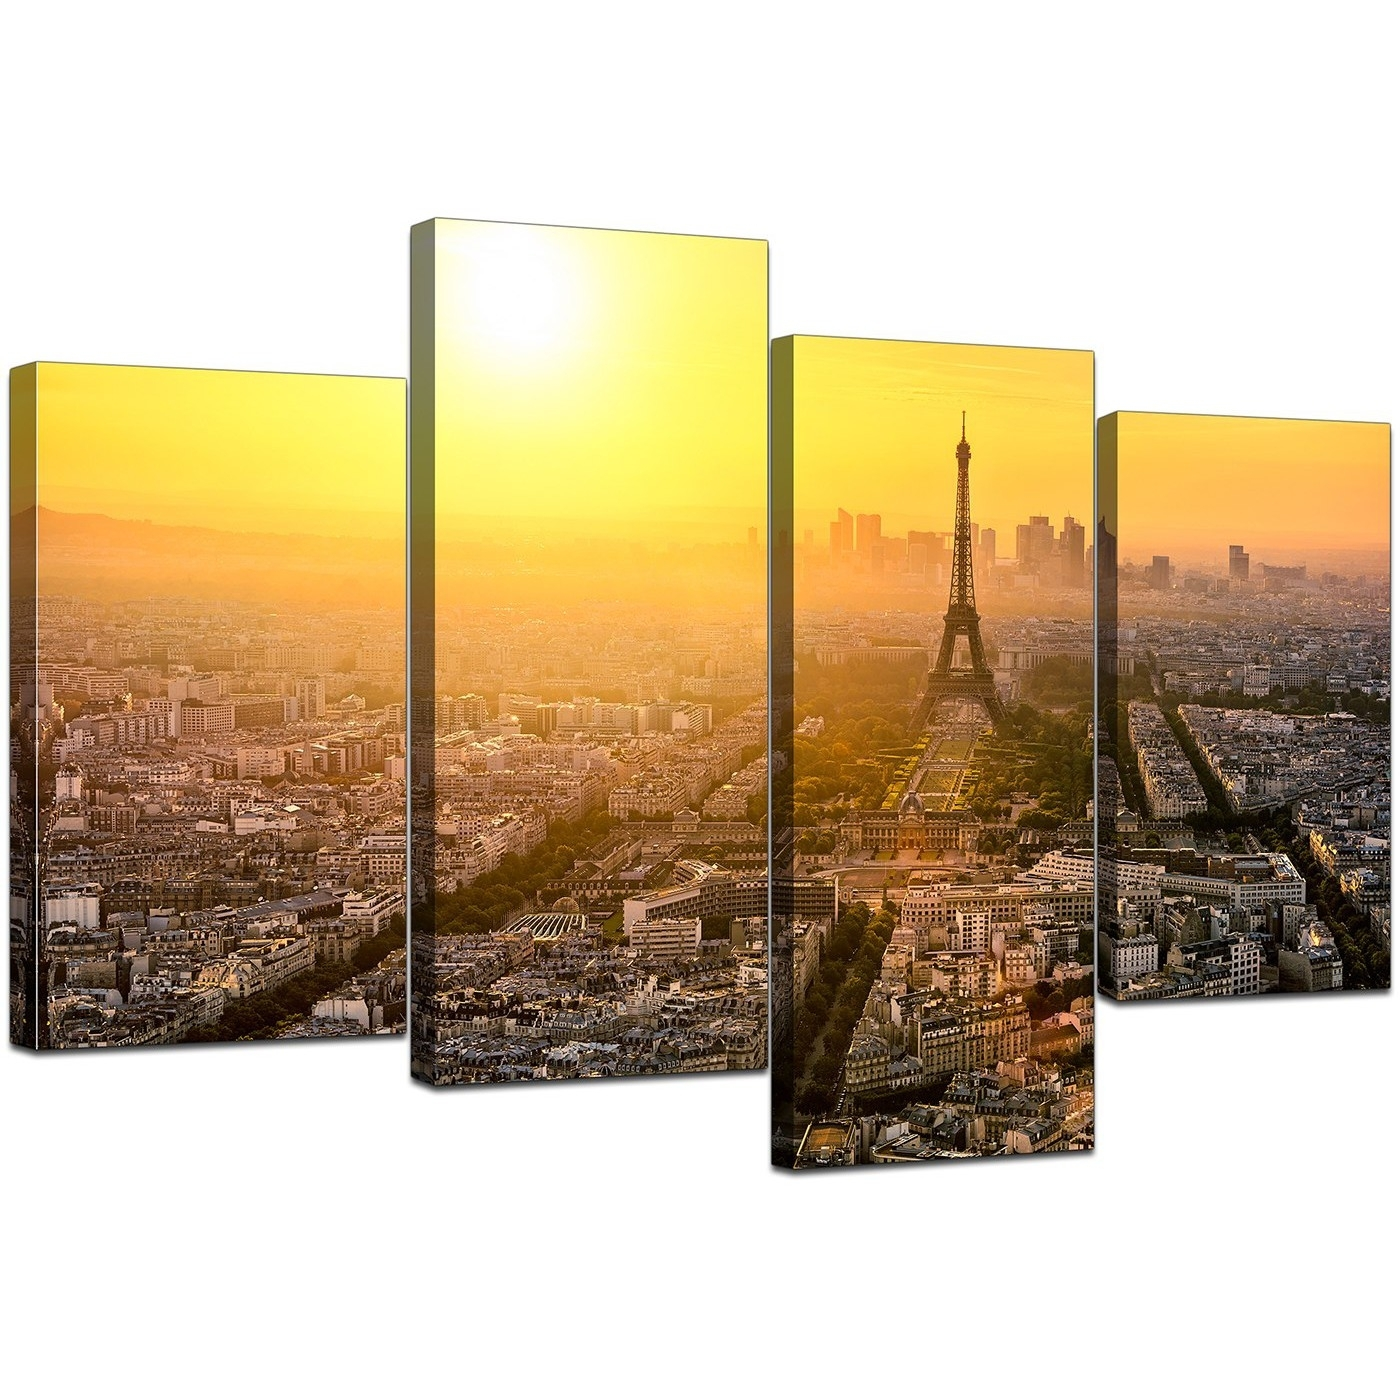 Canvas Art Of Eiffel Tower Paris For Your Hallway – Set Of 4 In Most Up To Date Canvas Wall Art Of Paris (View 3 of 15)